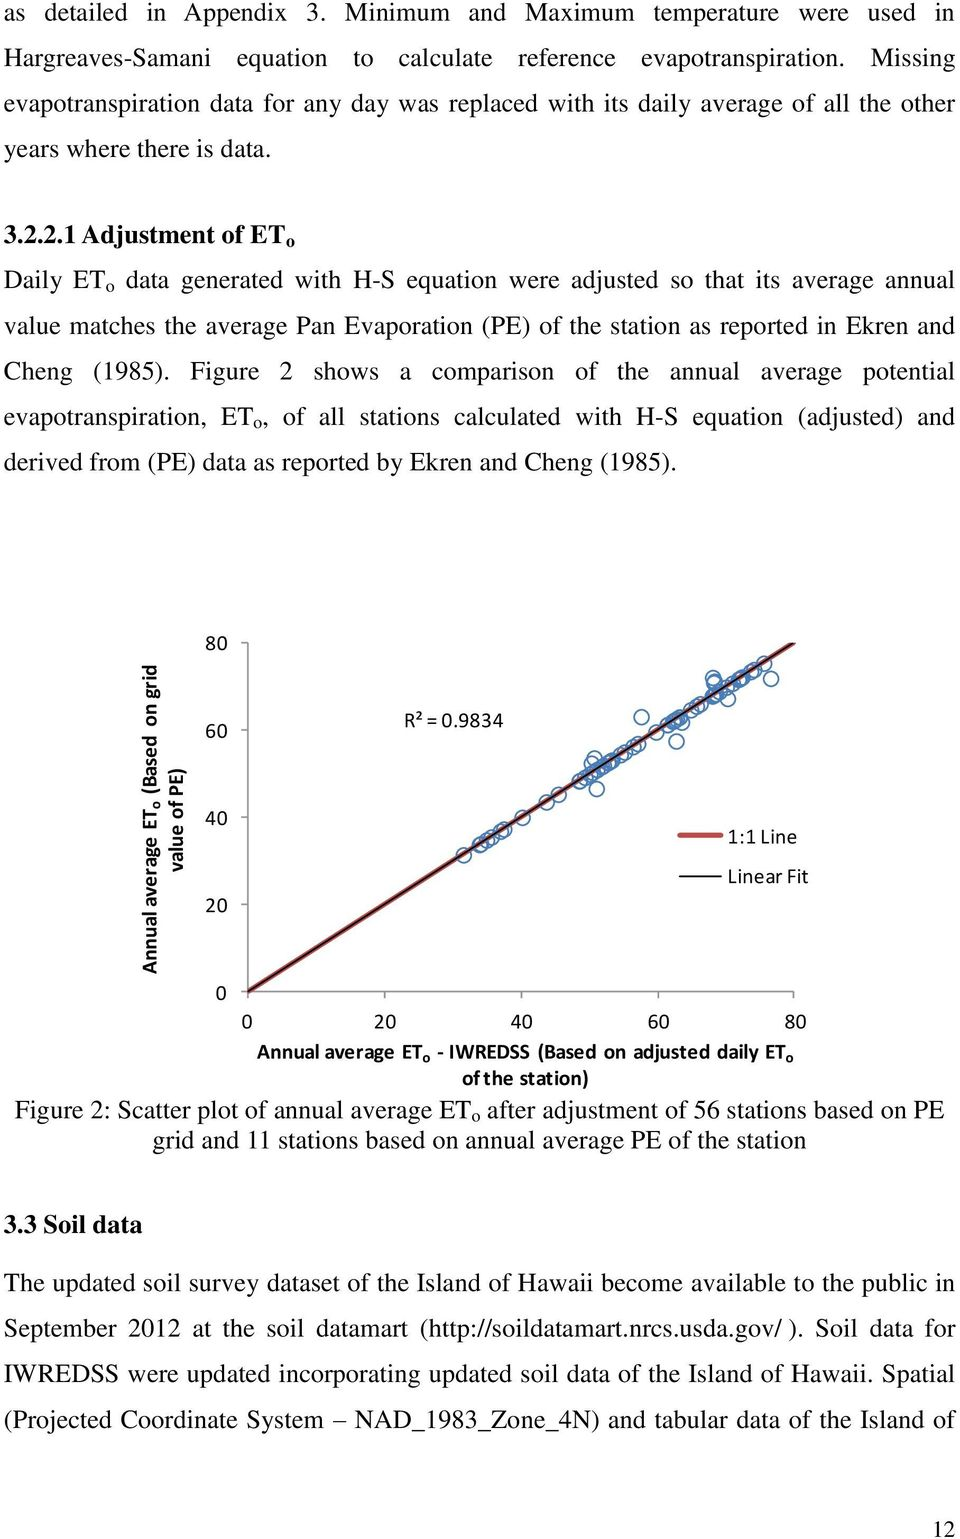 2.1 Adjustment of ET o Daily ET o data generated with H-S equation were adjusted so that its average annual value matches the average Pan Evaporation (PE) of the station as reported in Ekren and